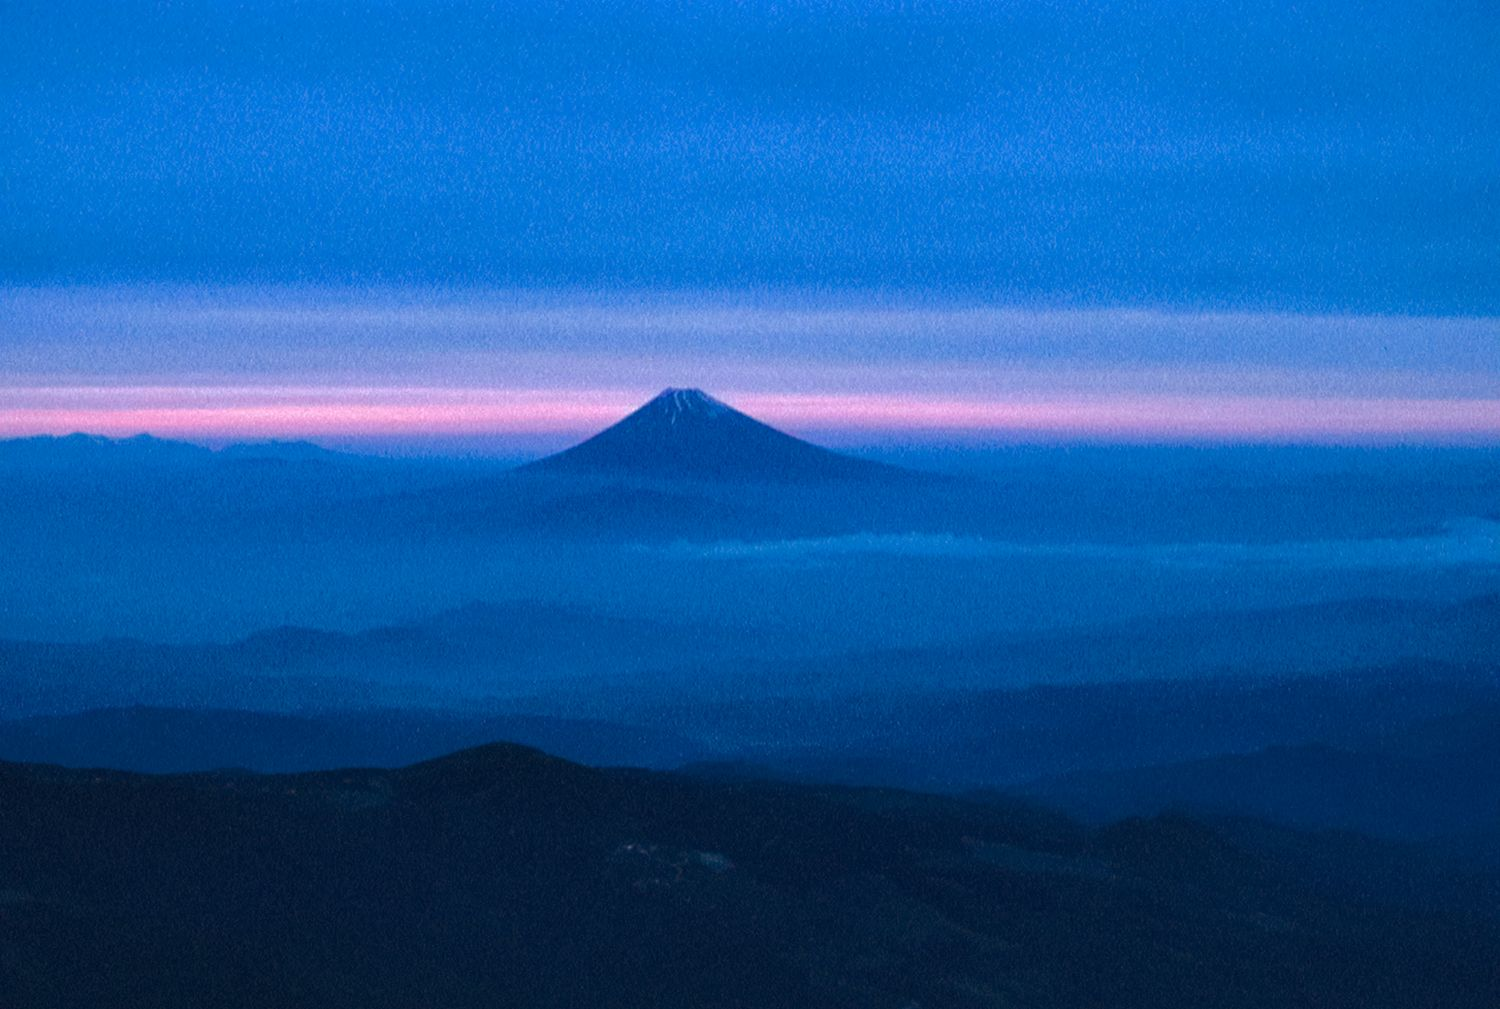 - Mount Fujiyama, Japan,  from the air - - art  - photography - by Tony Karp